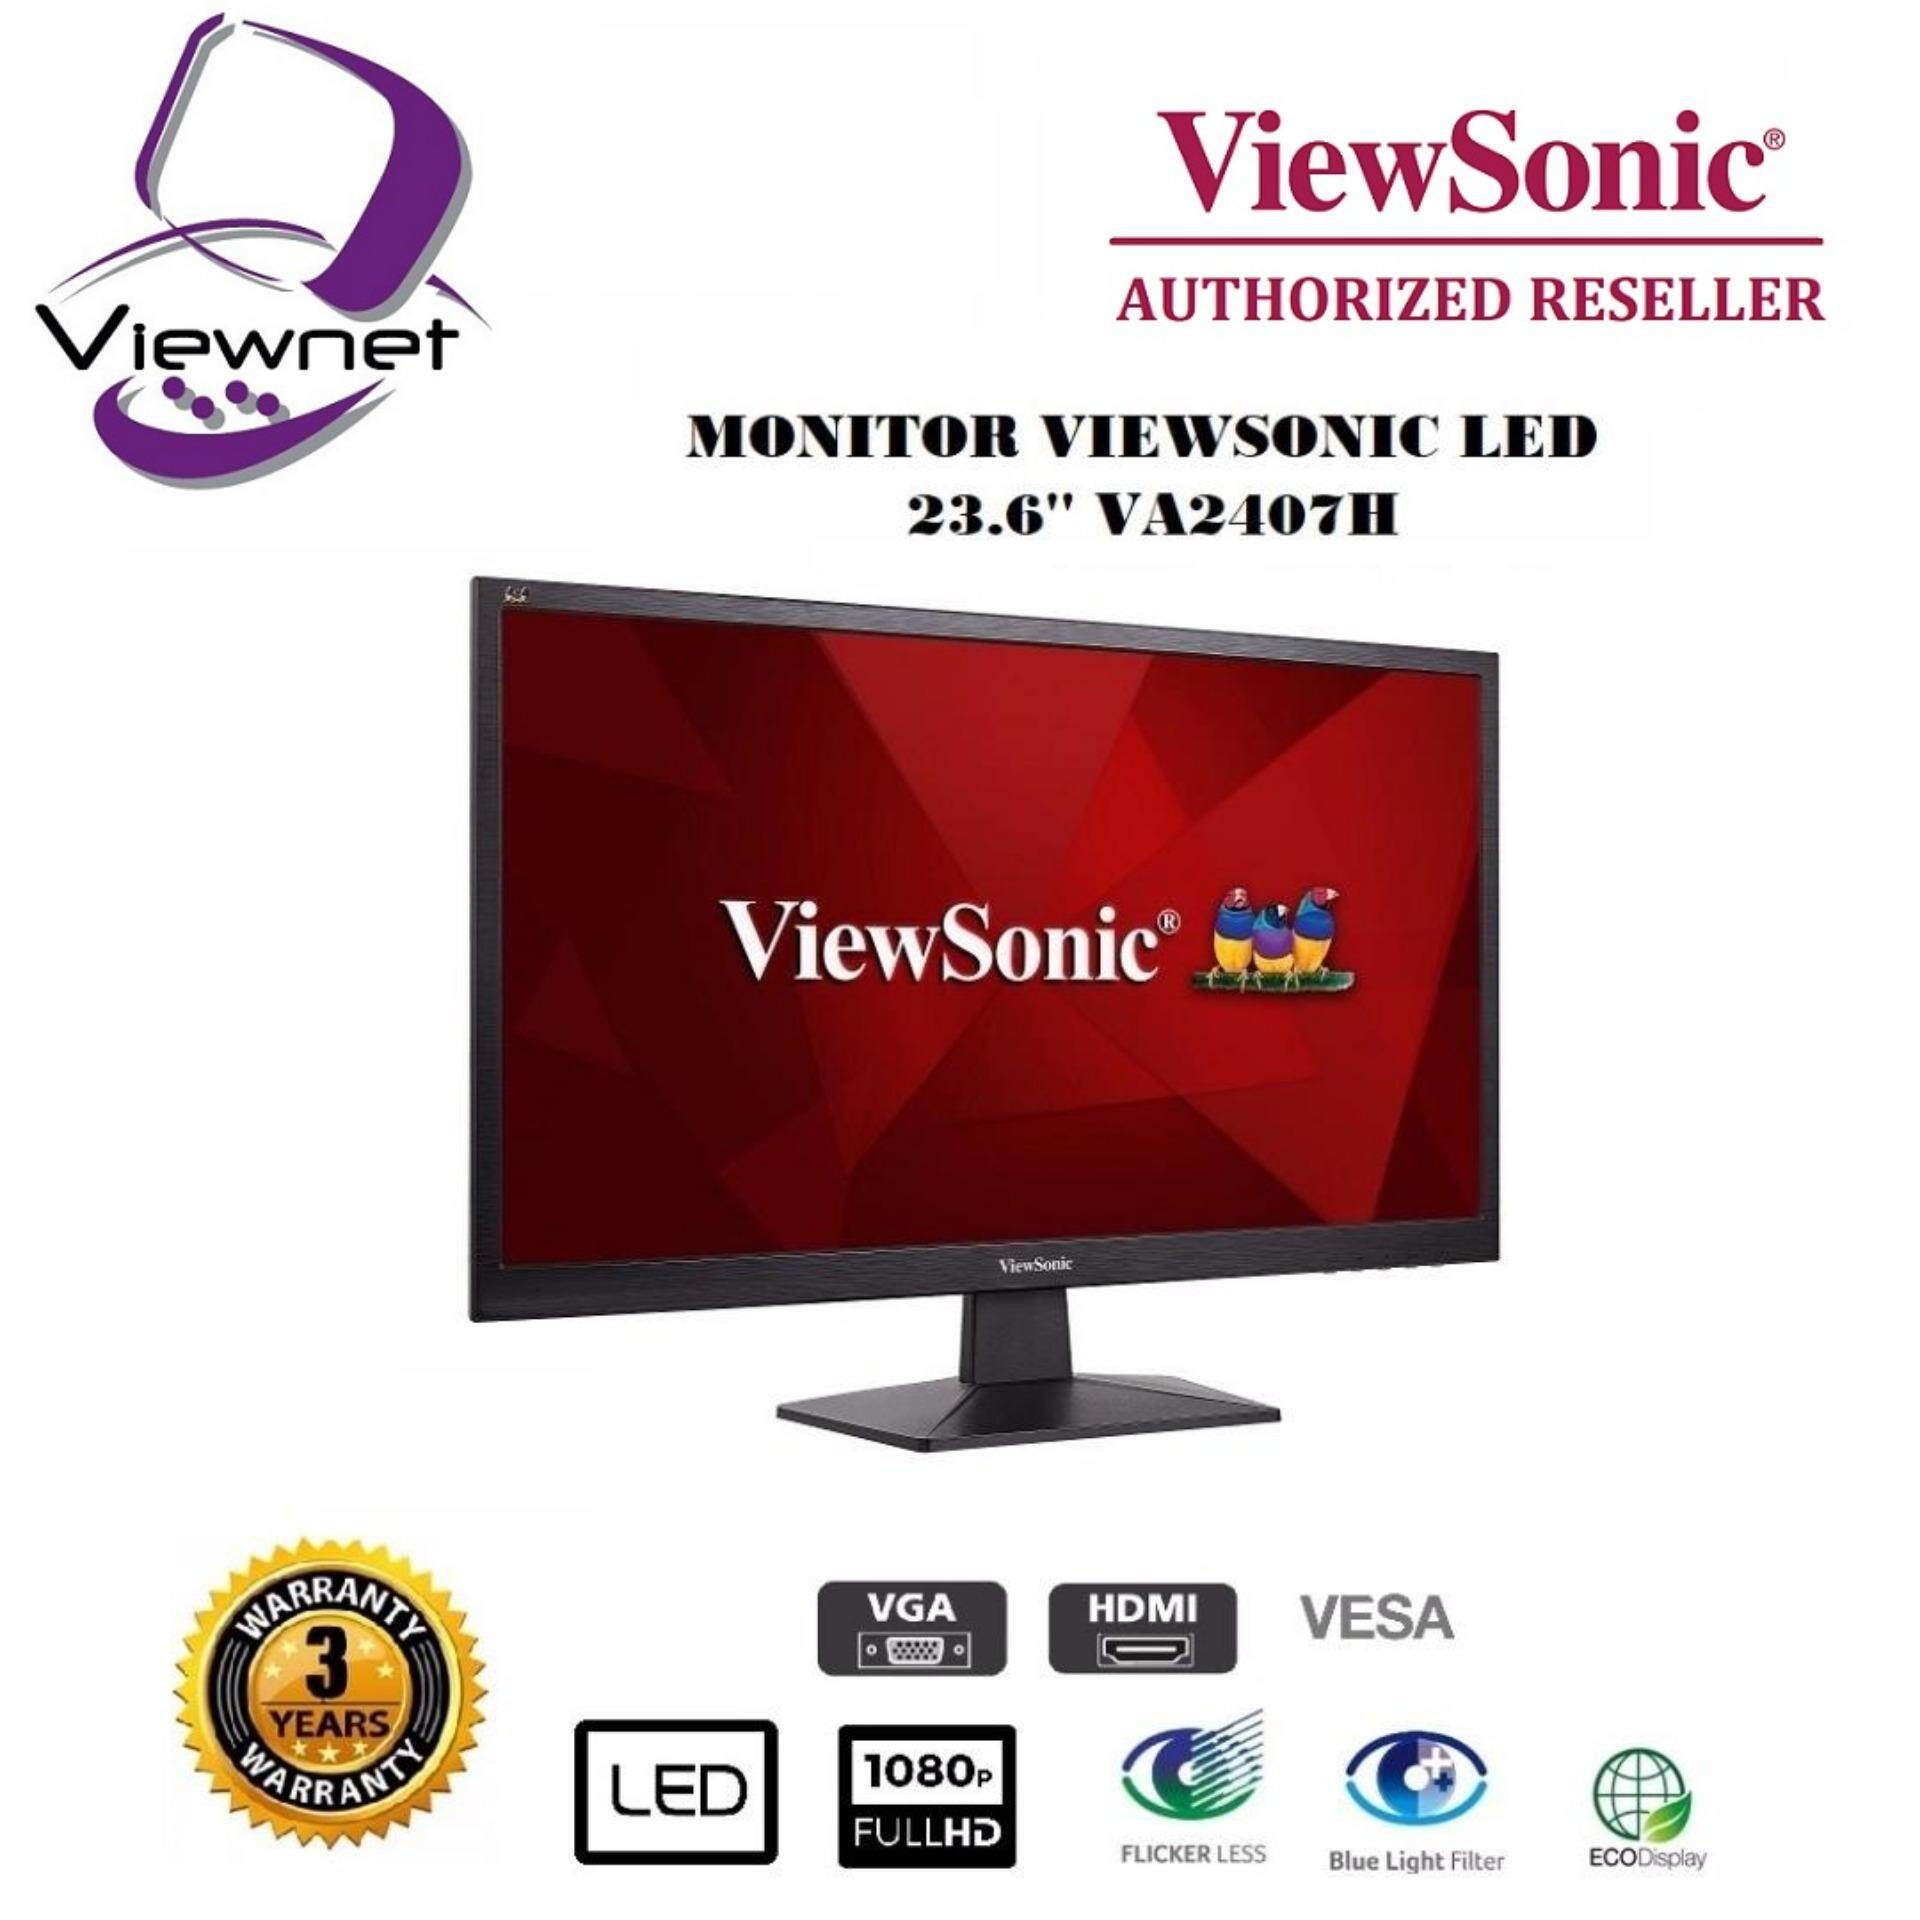 GENUINE VIEWSONIC LED FLAT FHD 23.6 VA2407H LCD MONITOR (5MS/VGA/HDMI/VESA) BLACK Malaysia